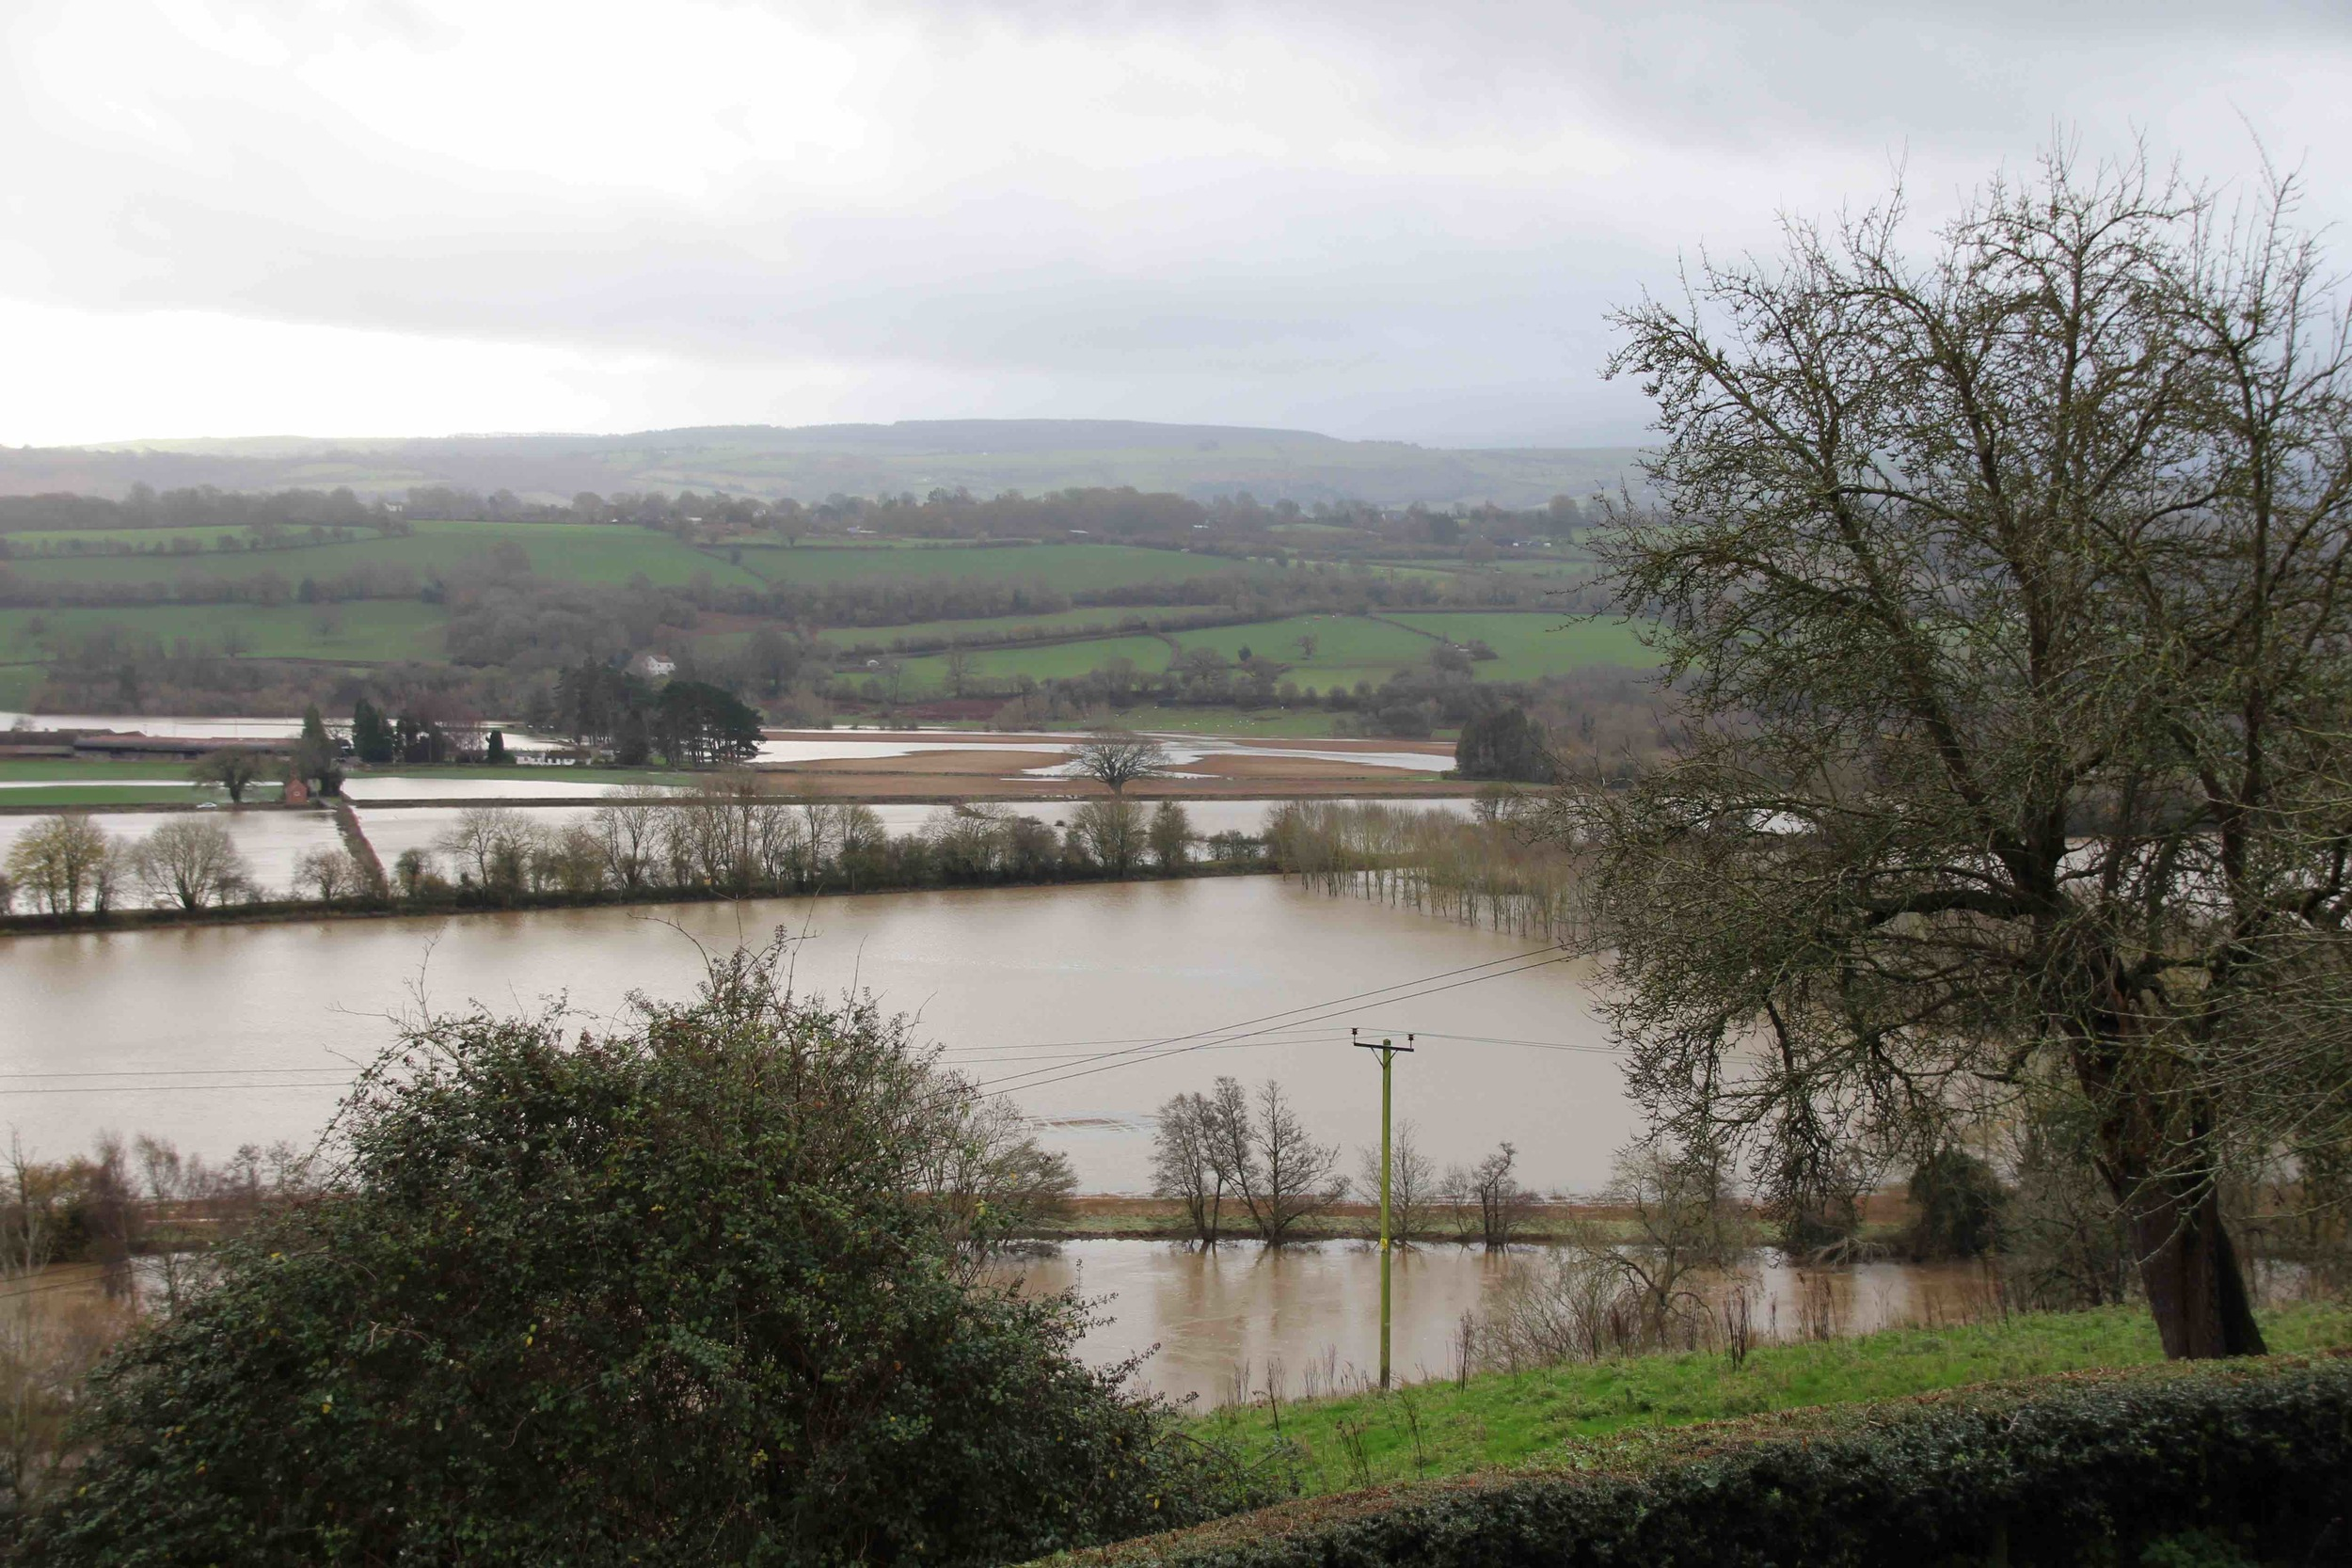 The River Wye in flood. Behind me was a field of sheep.